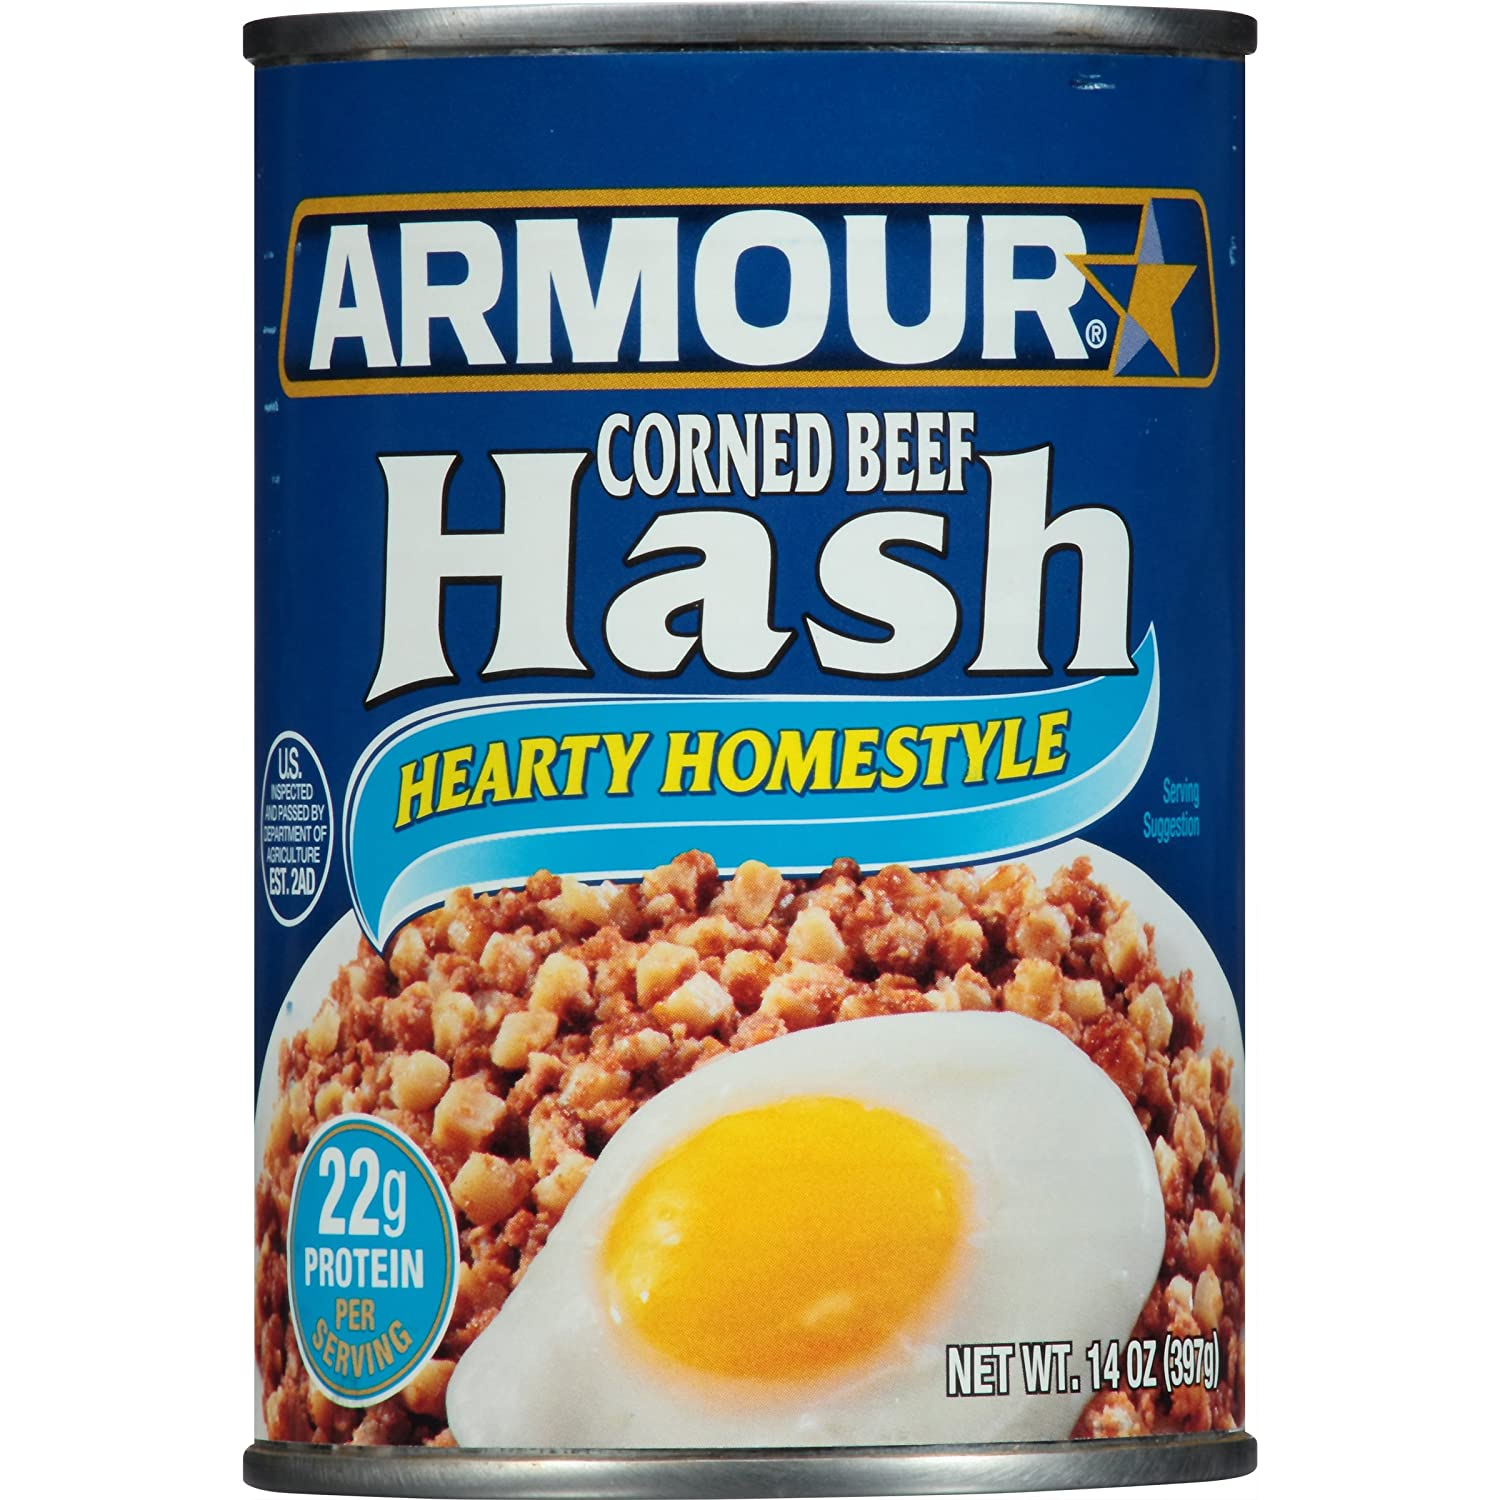 Armour Star Corned Beef Hash 14 Oz Pack Of 12 Amazon Com Grocery Gourmet Food